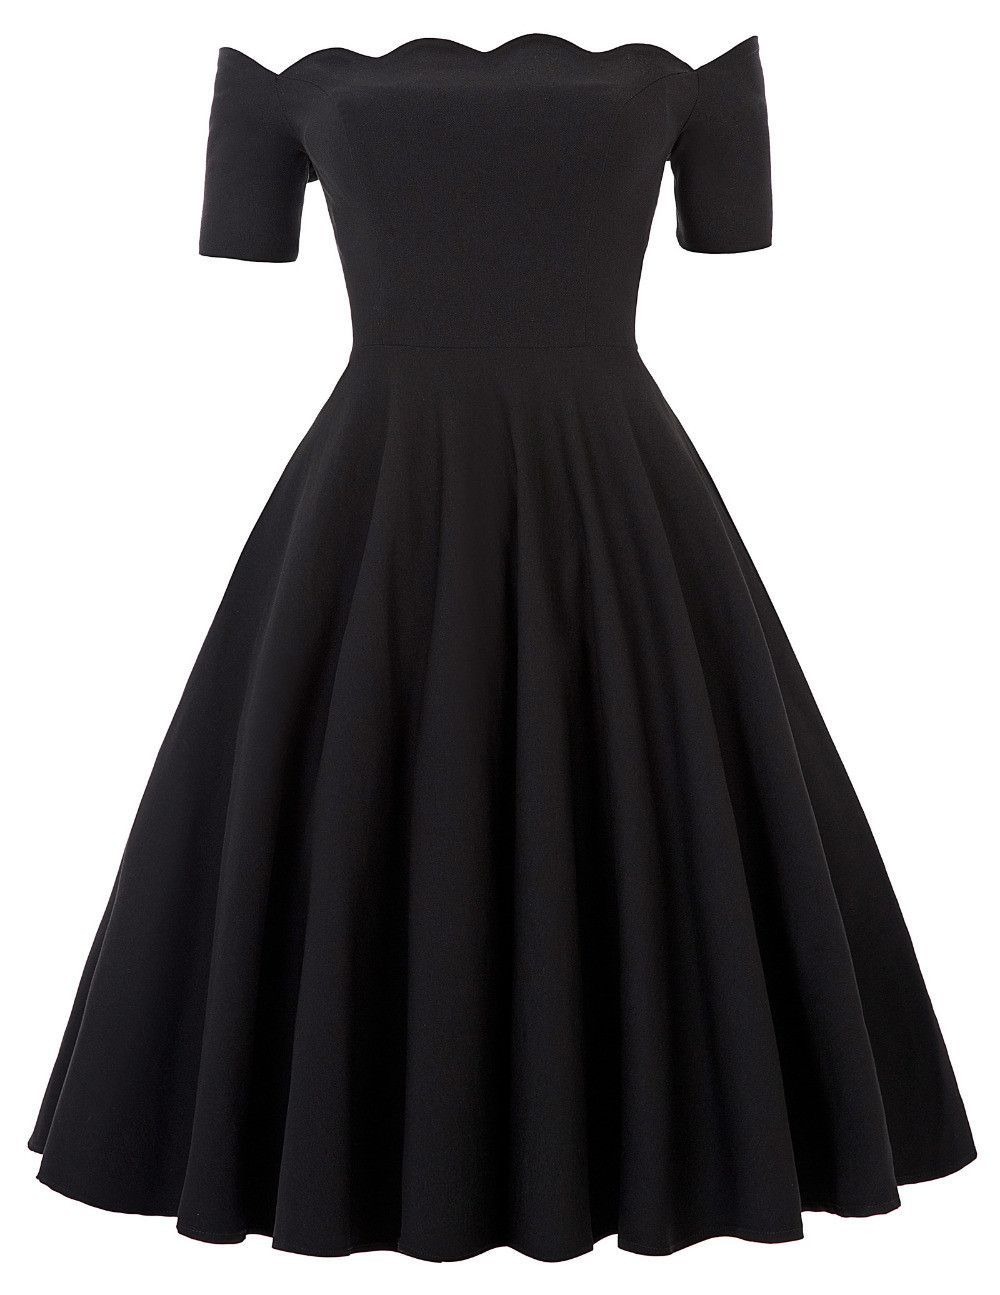 Off Shoulder Dress Audrey Hepburn Vestidos Vintage 50s 60s Rockabilly  Casual Robe Pin Up Swing Black Party Dresses With Sleeves 4bef6a0c7234